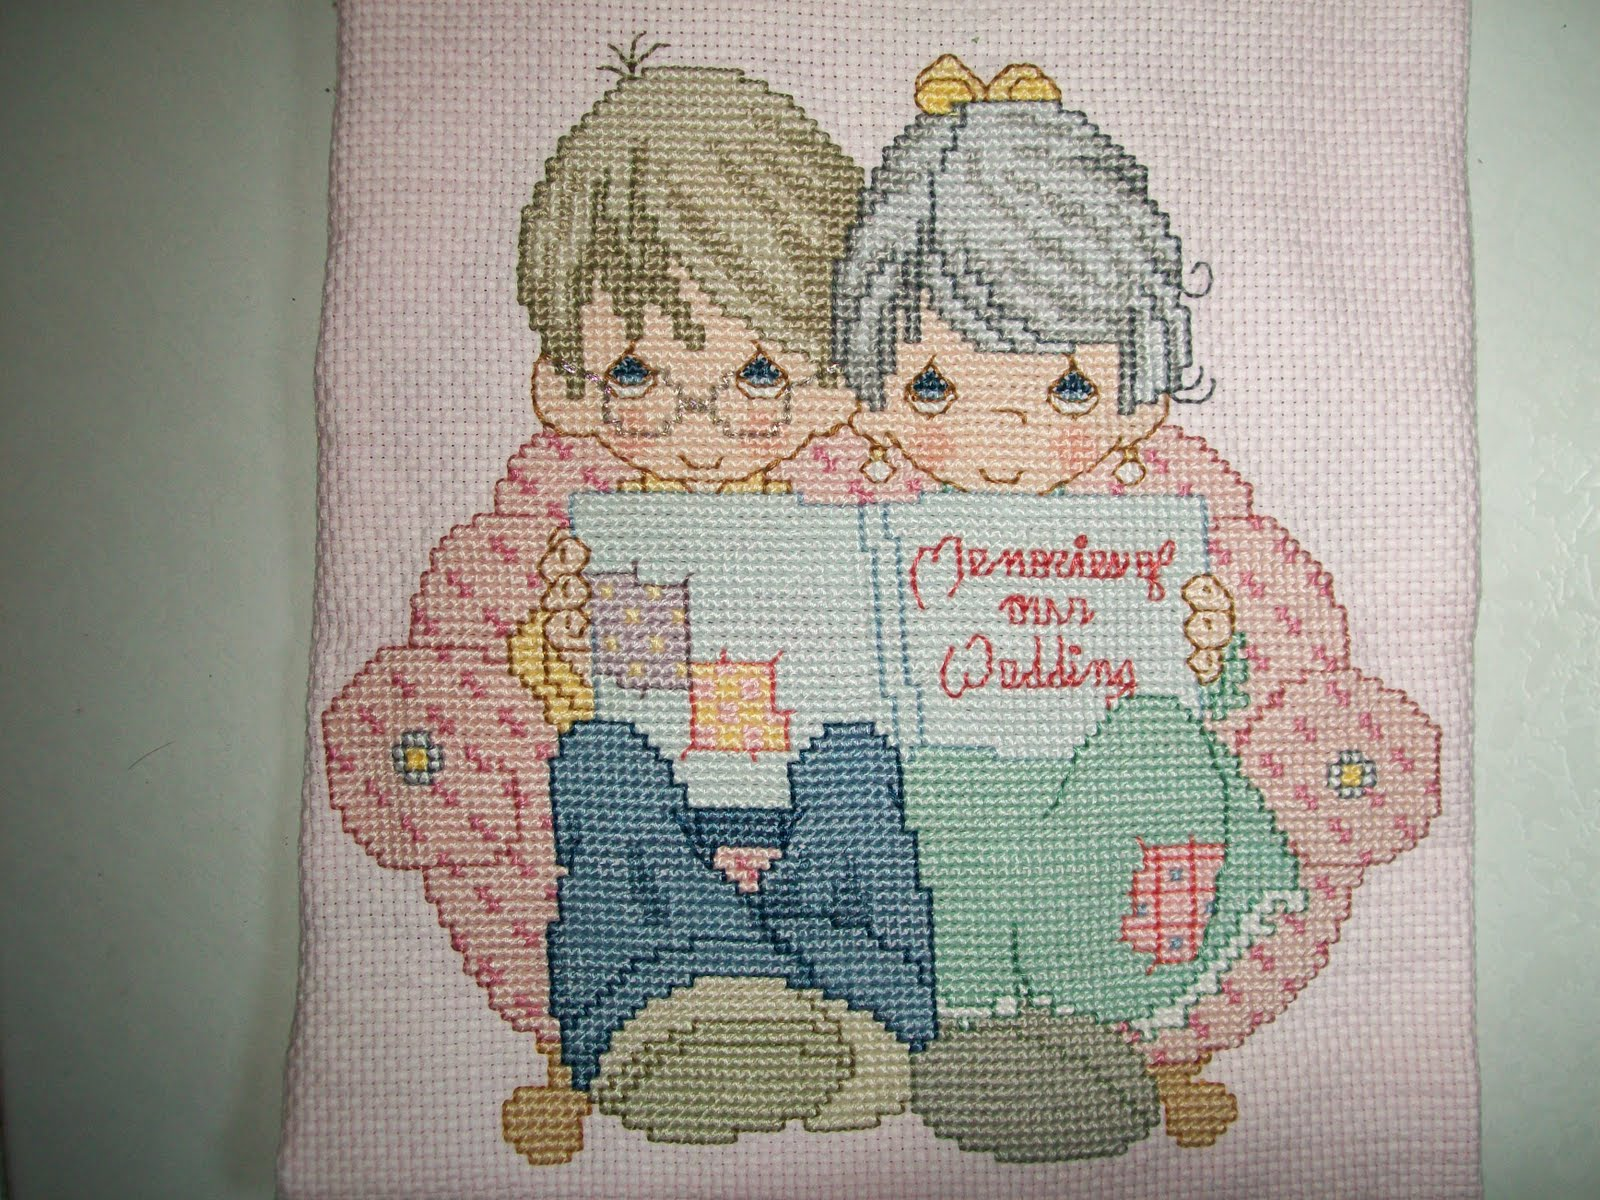 items made with love  precious moments cross stitch